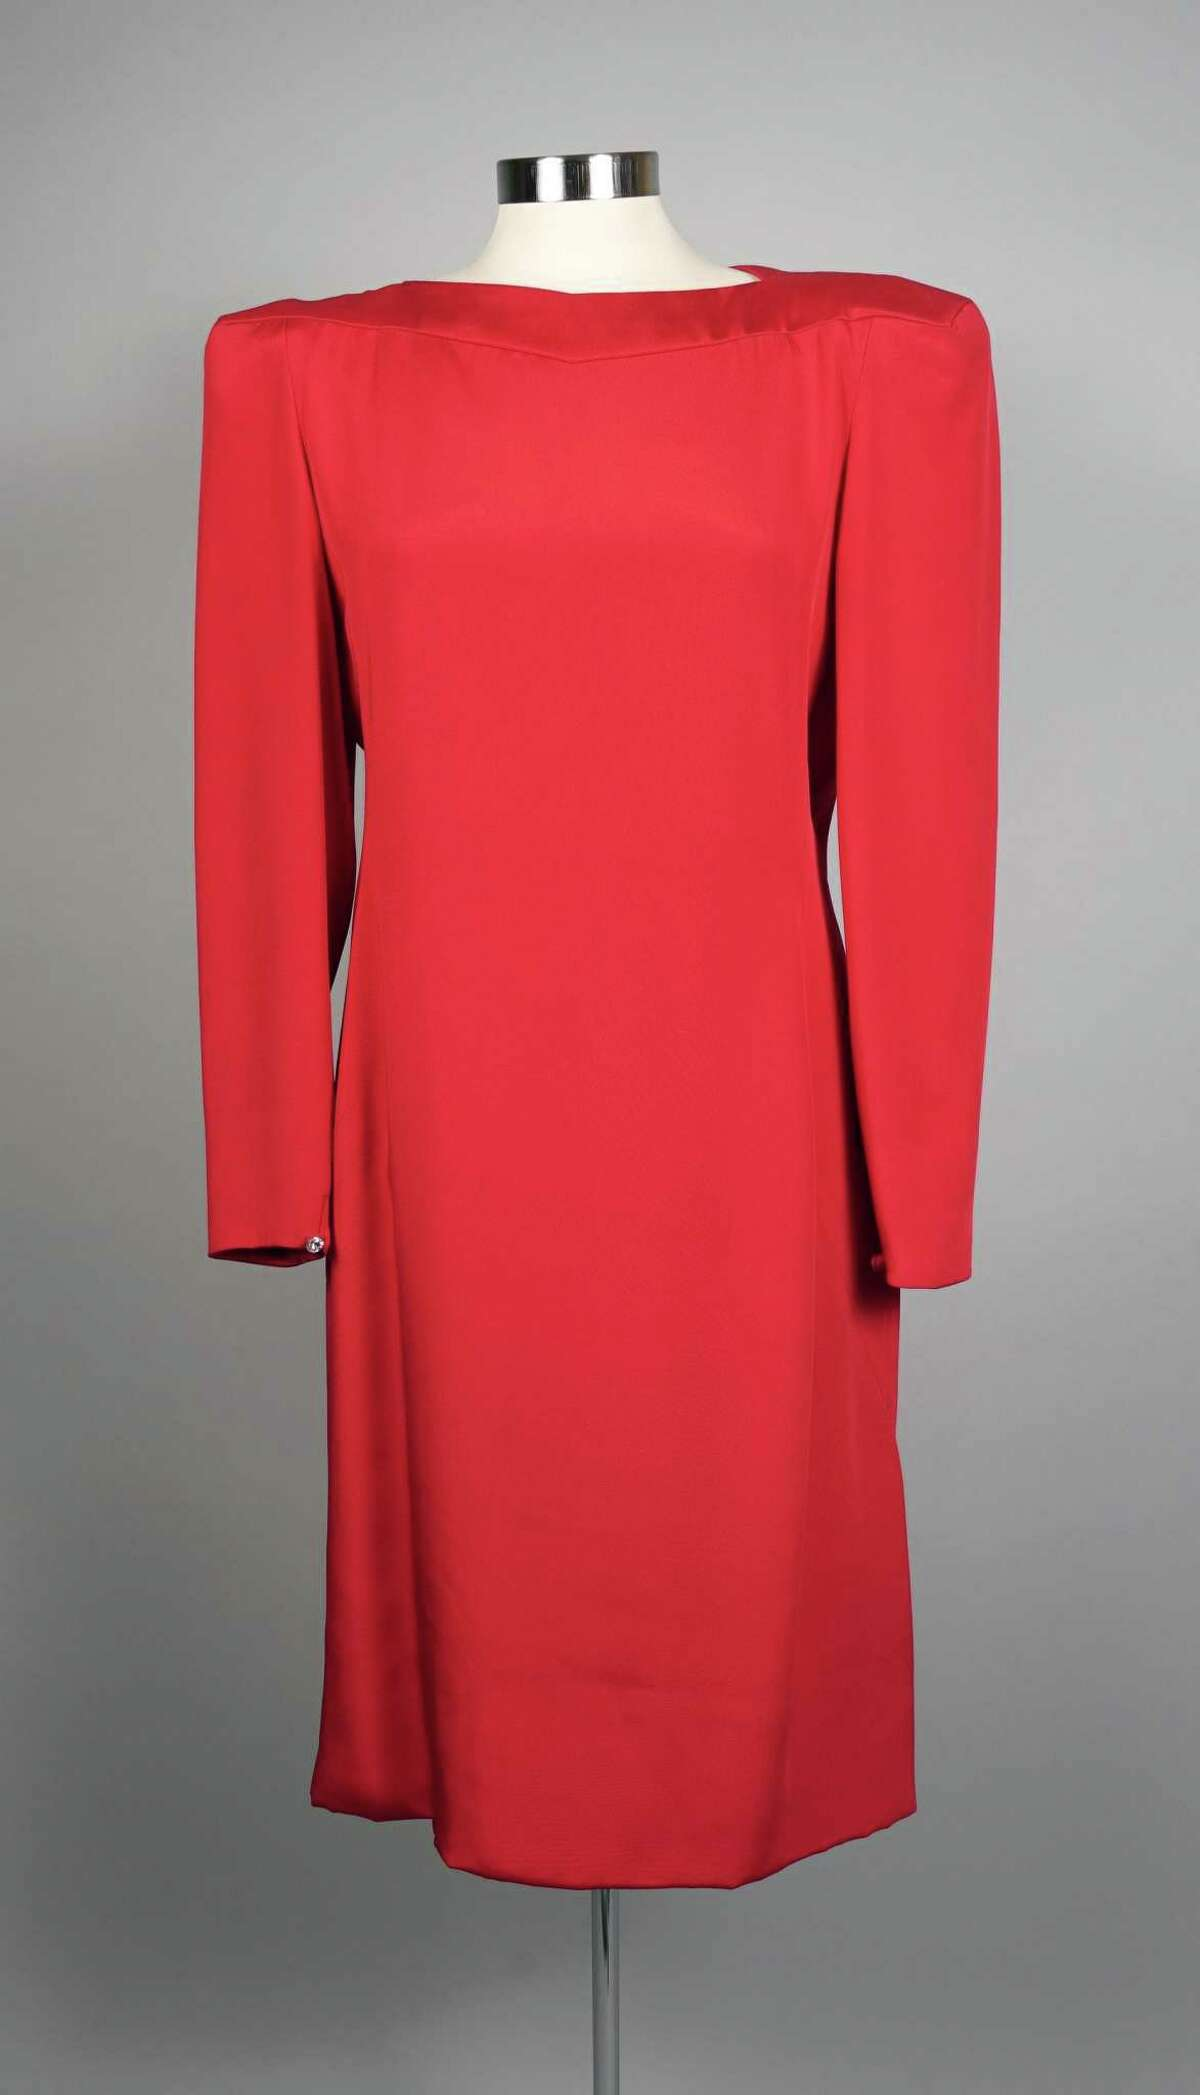 A Carolina Herrera red silk dress is one of the items from the collection of philanthropist Flora Cameron Crichton included in the internet auction and estate sale to benefit the Flora Cameron Foundation.